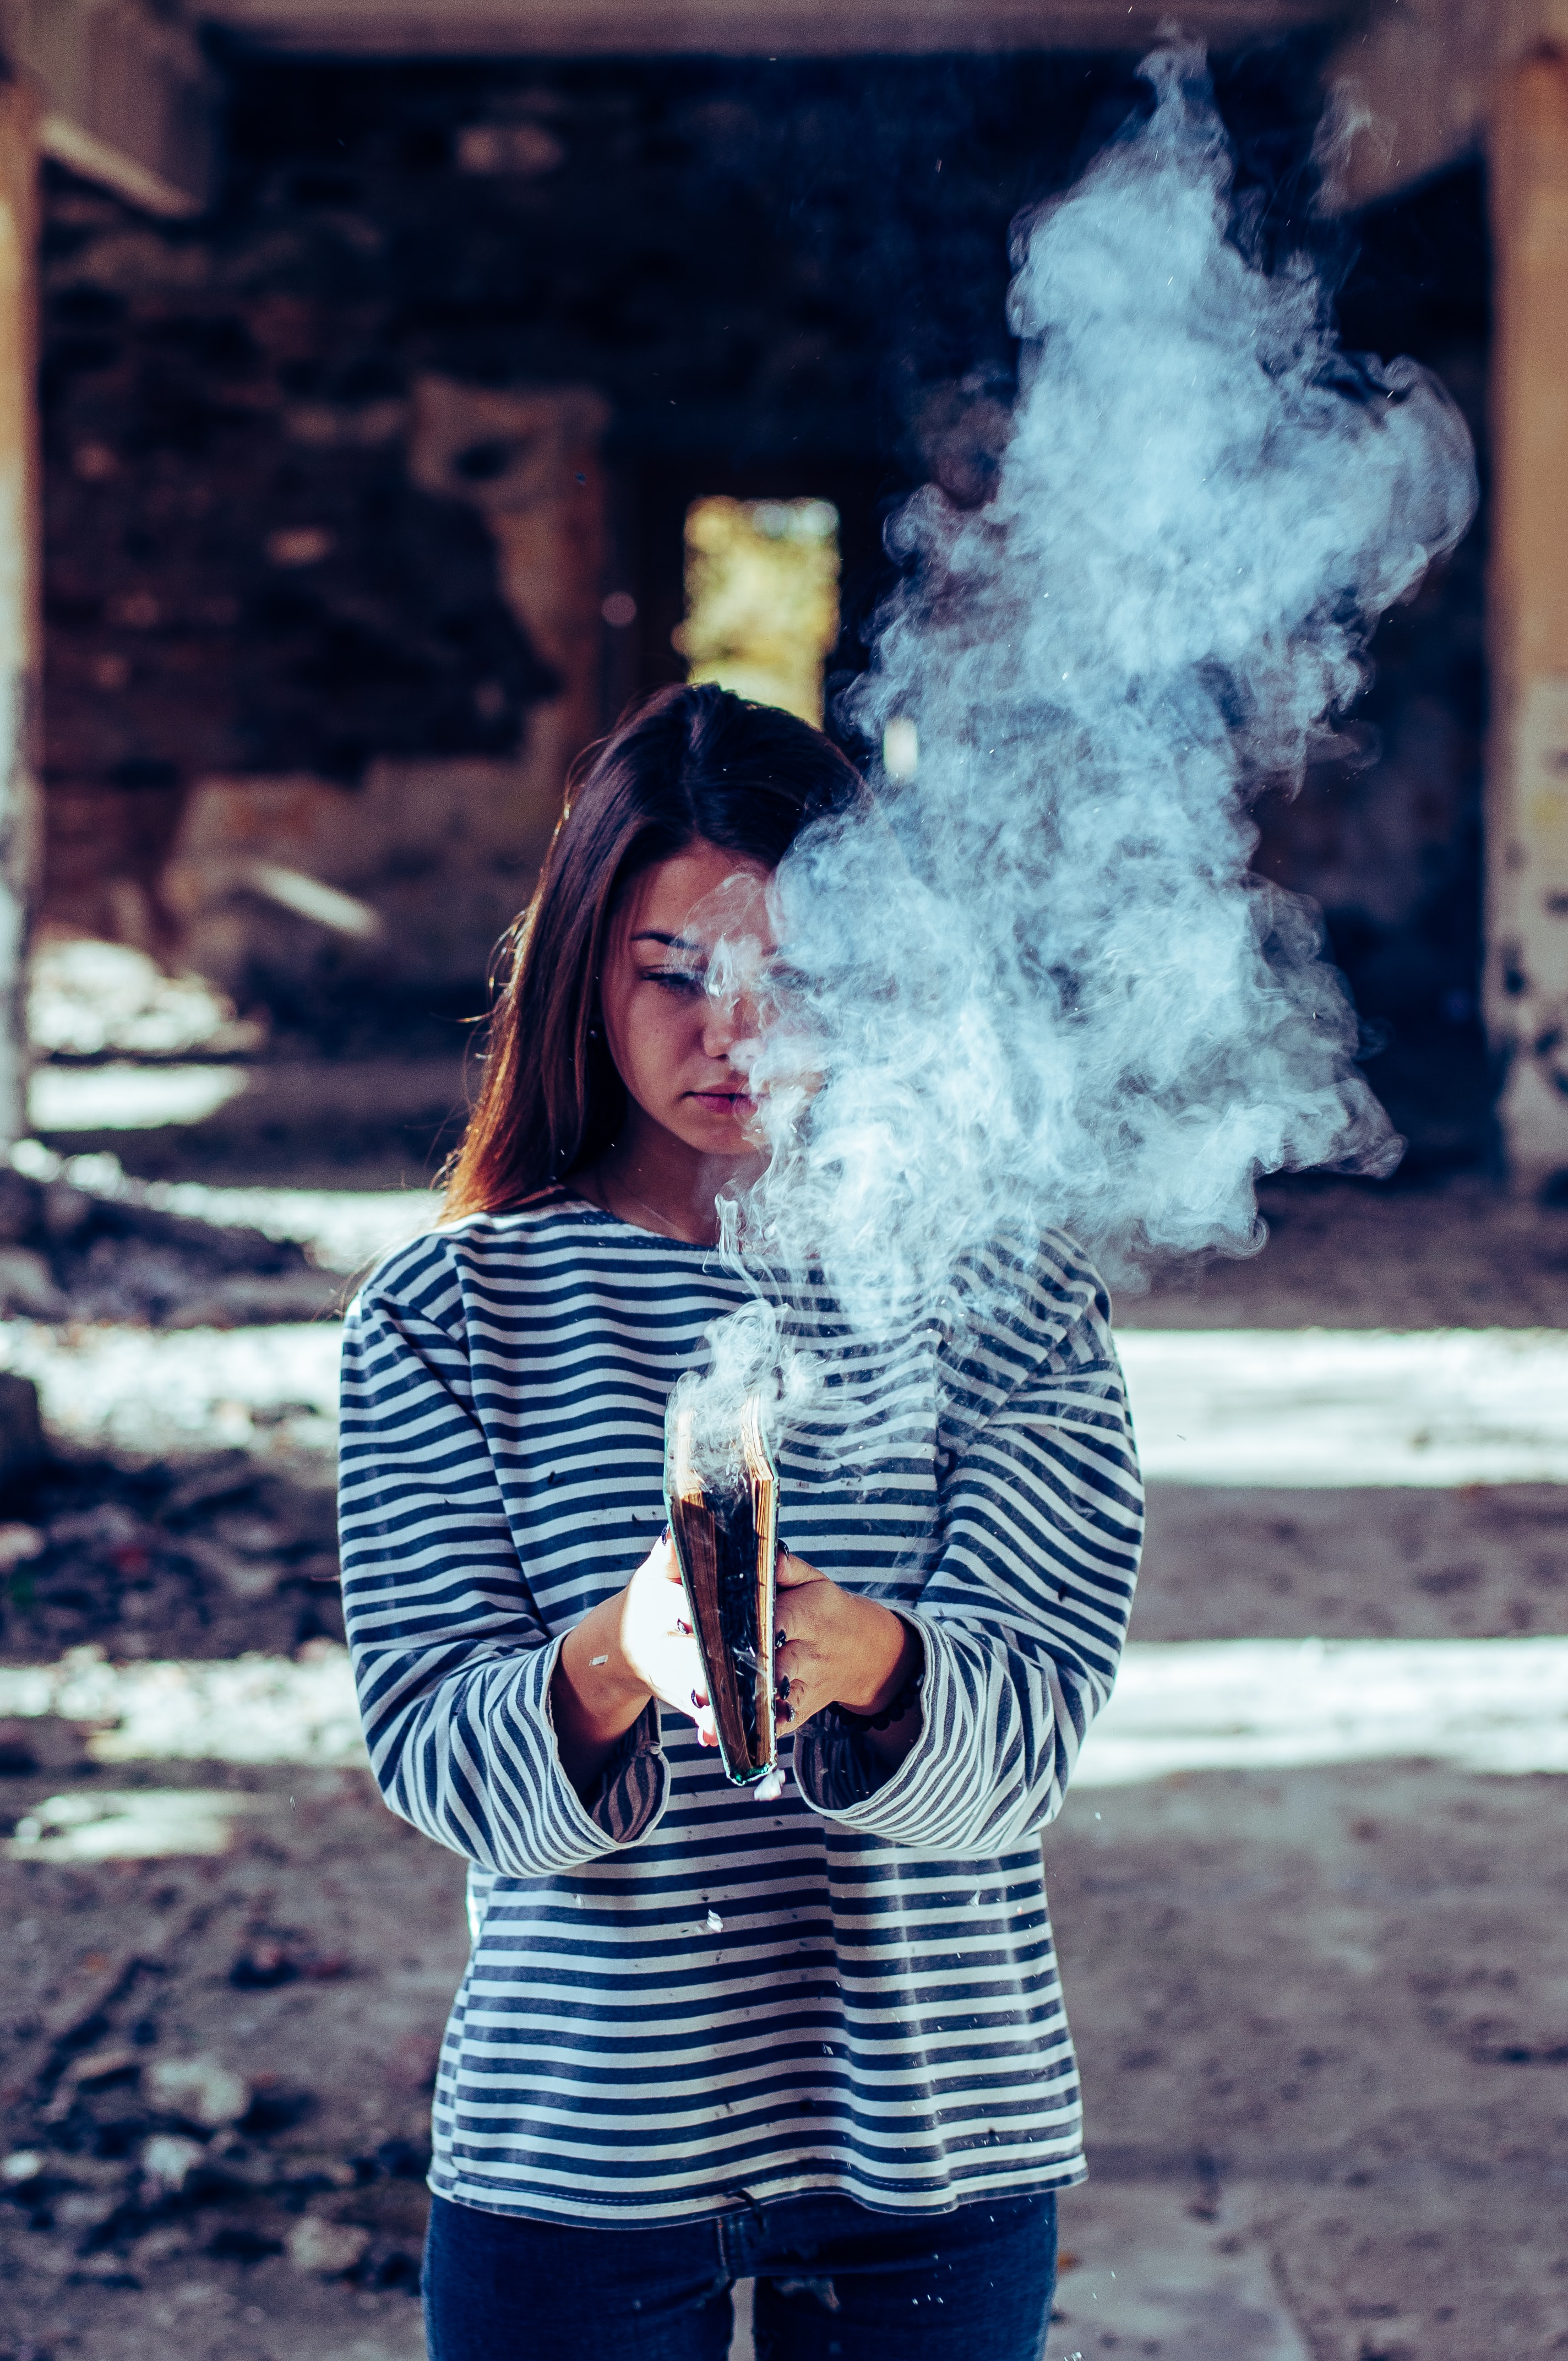 person holding book with smoke